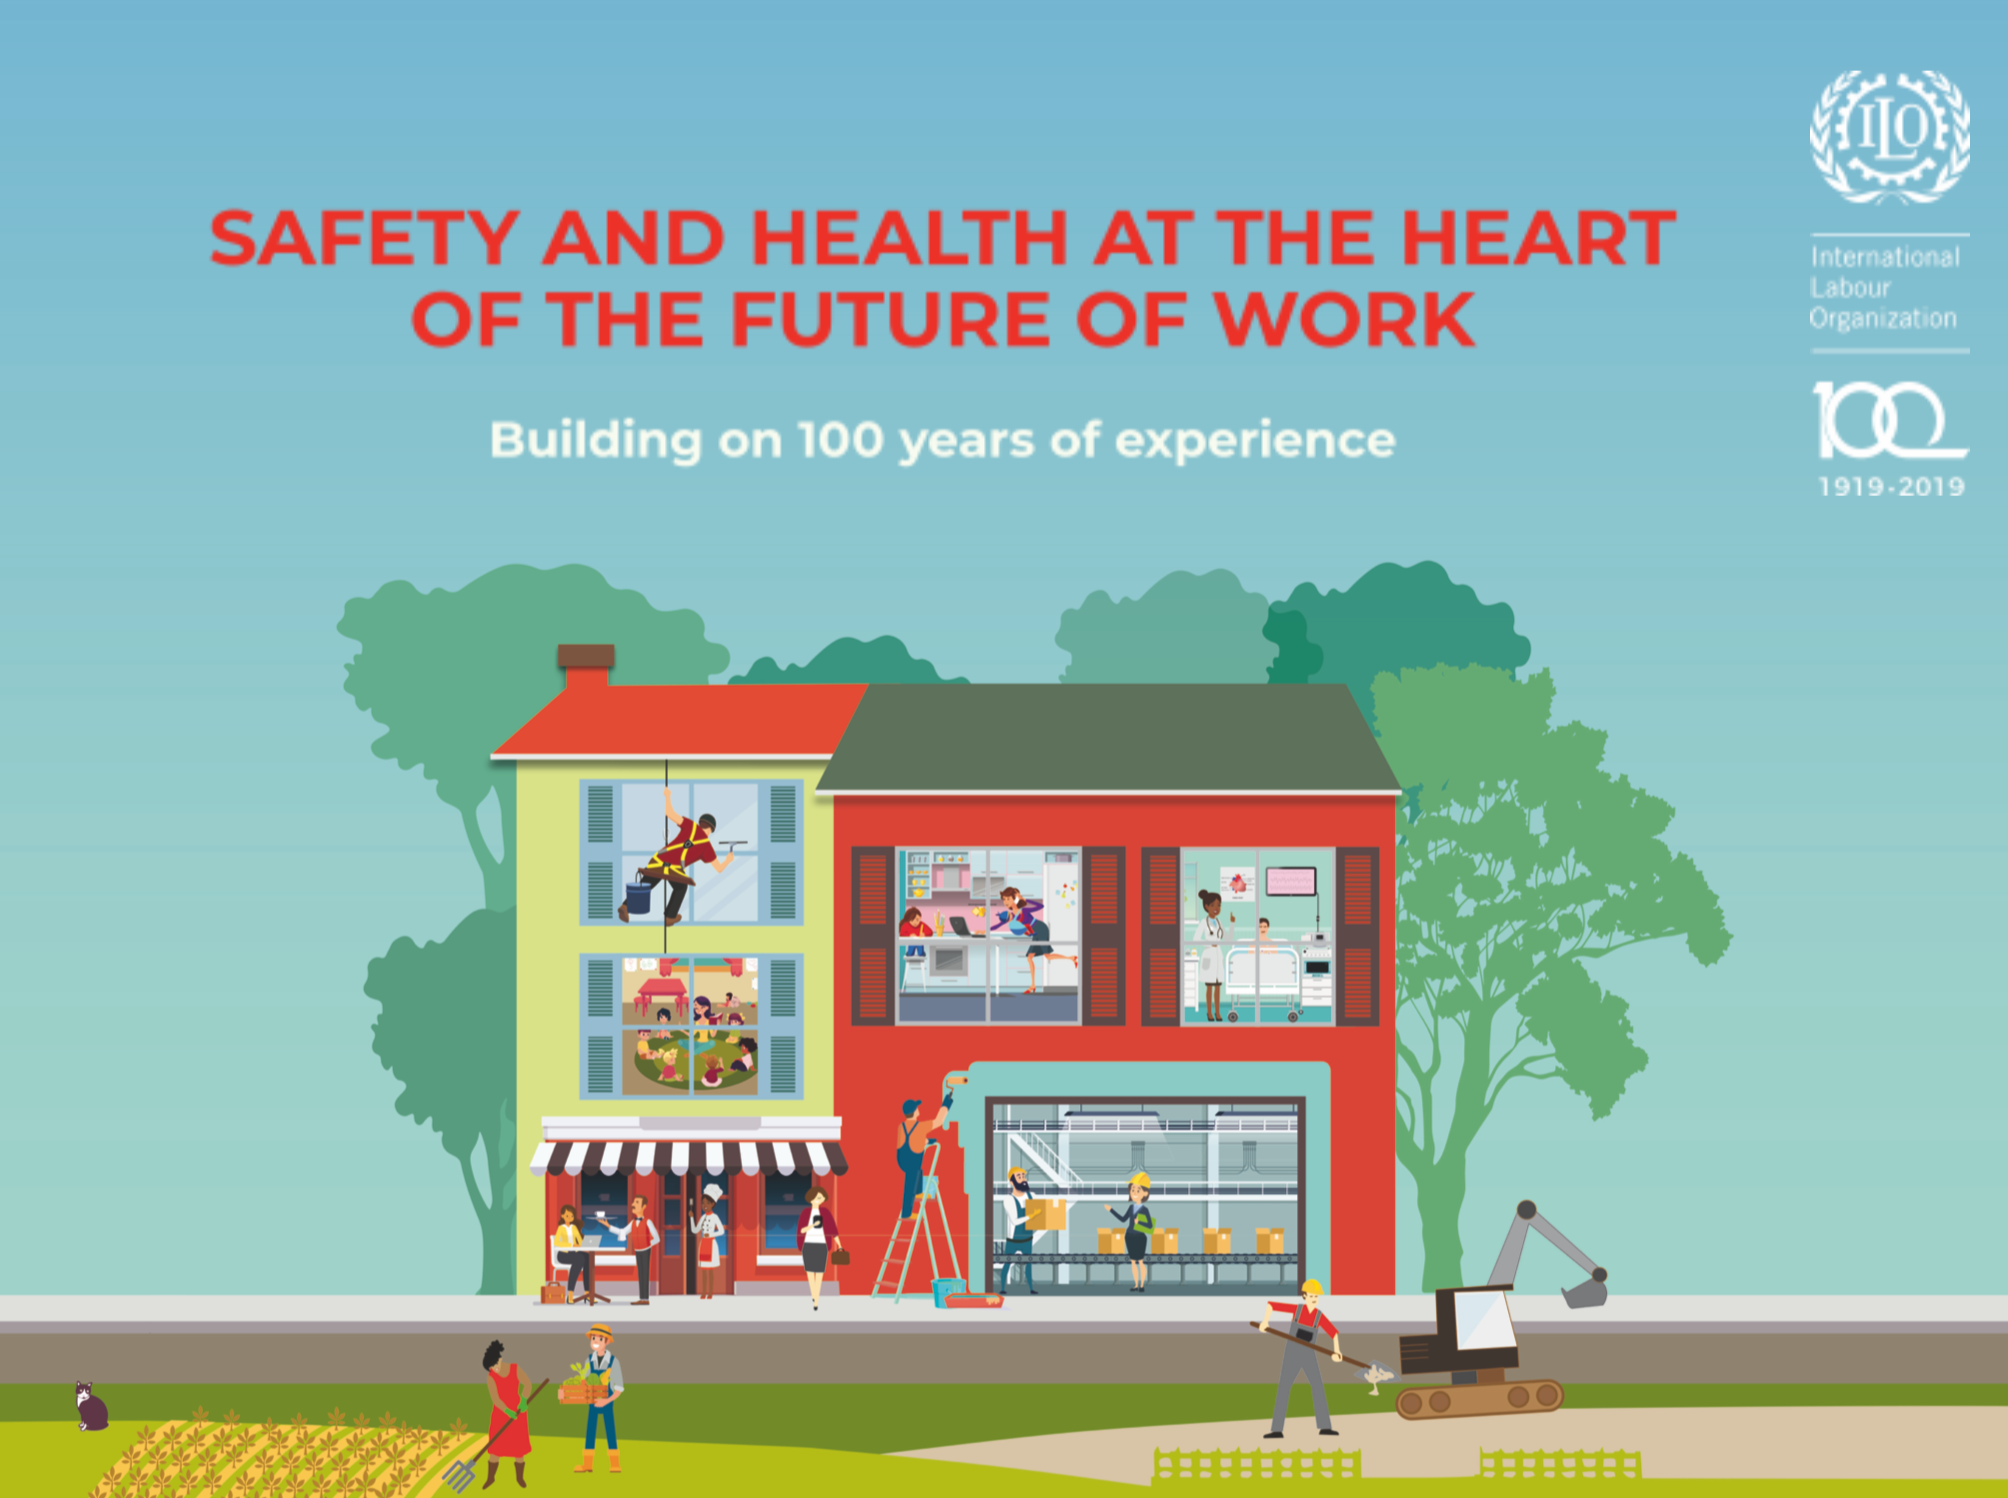 PPT Presentation of the World Day for Safety and Health at Work 2019